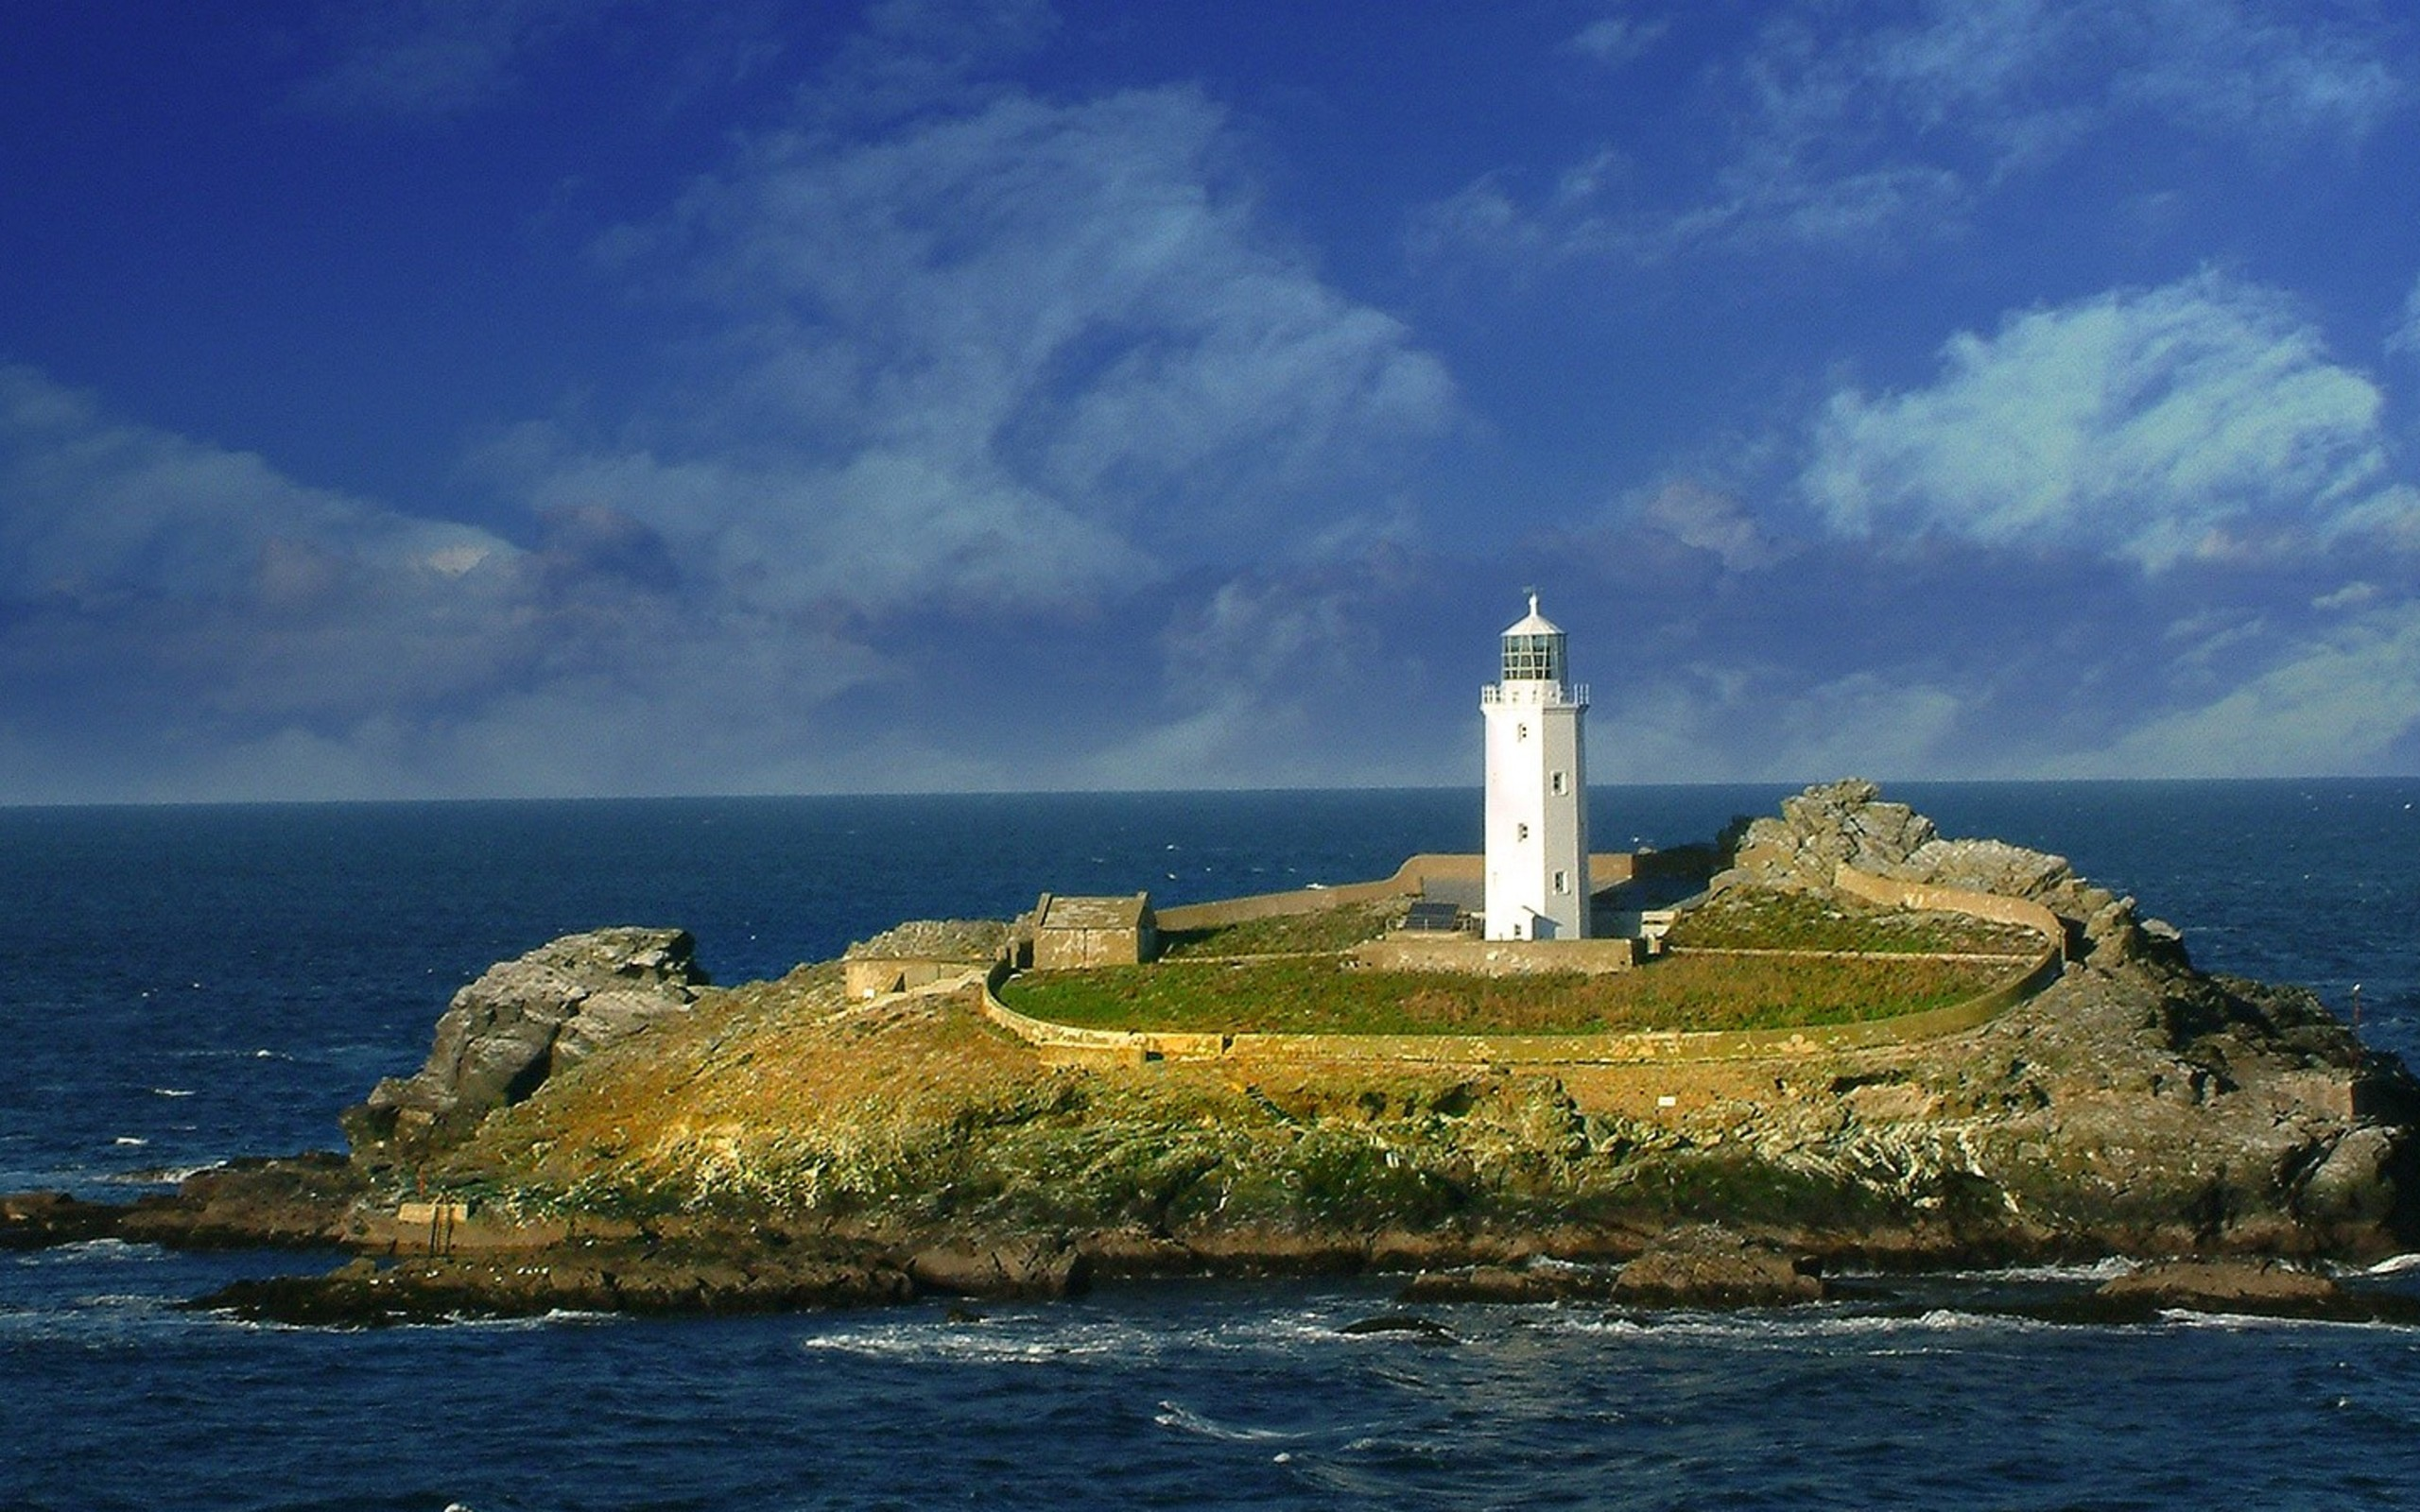 Lighthouse Hd Wallpapers: HD Lighthouse Wallpaper